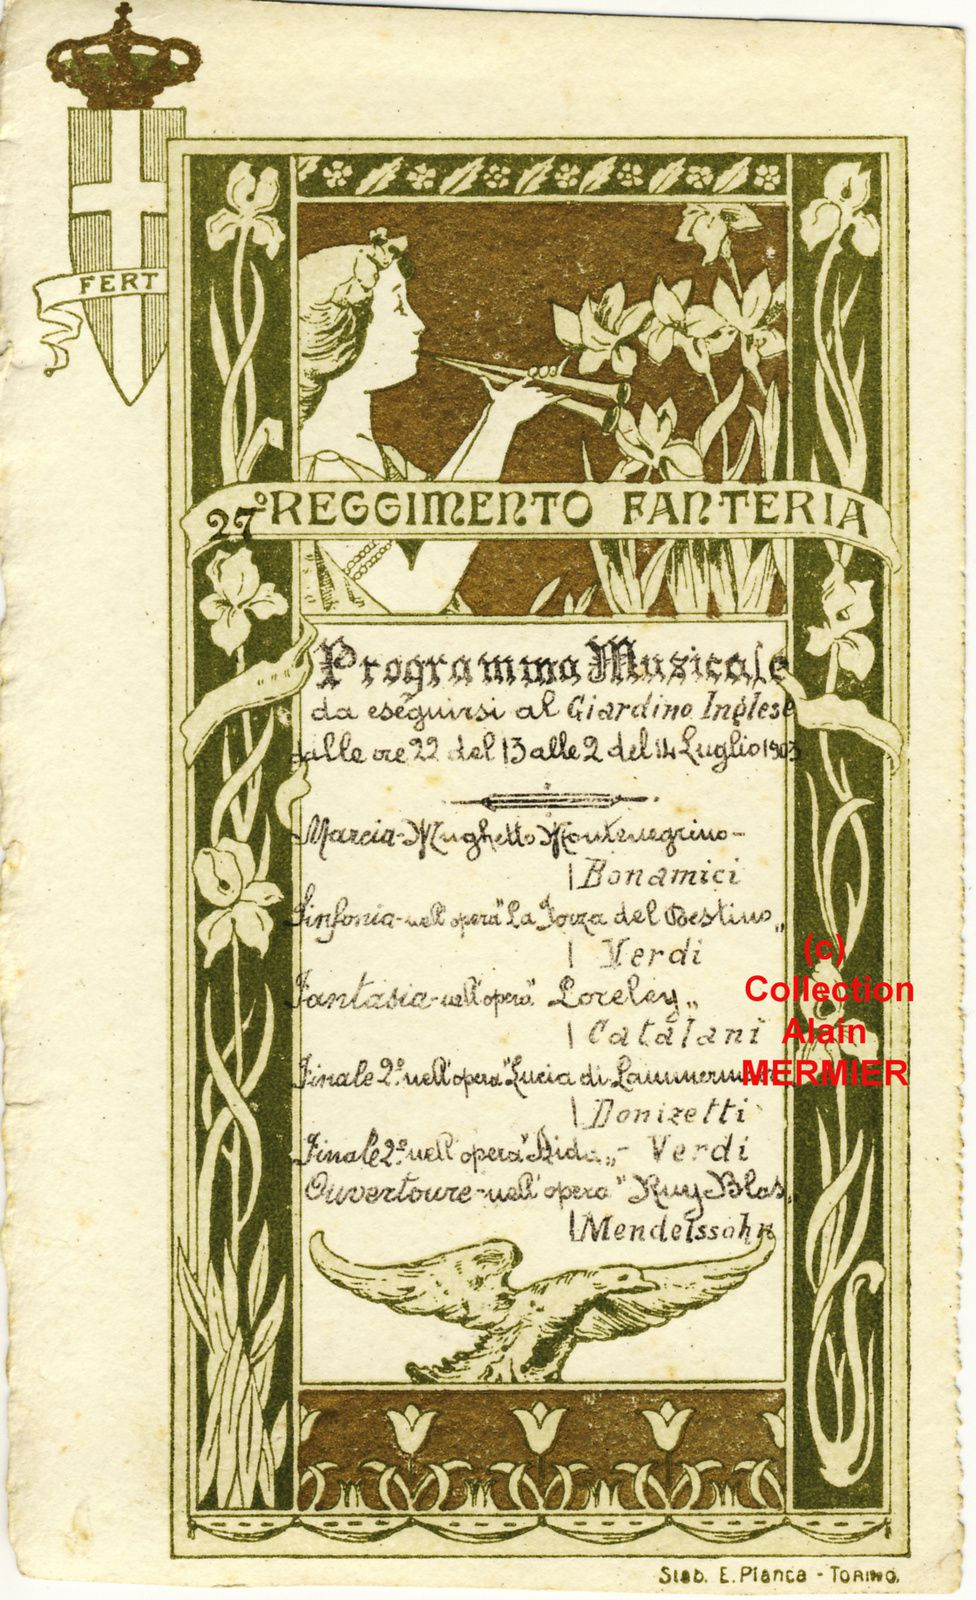 - 1993-  *  27th Regiment of Infantry.  *  Program  Musical.  *  July 14th, 1903.  *  Turin